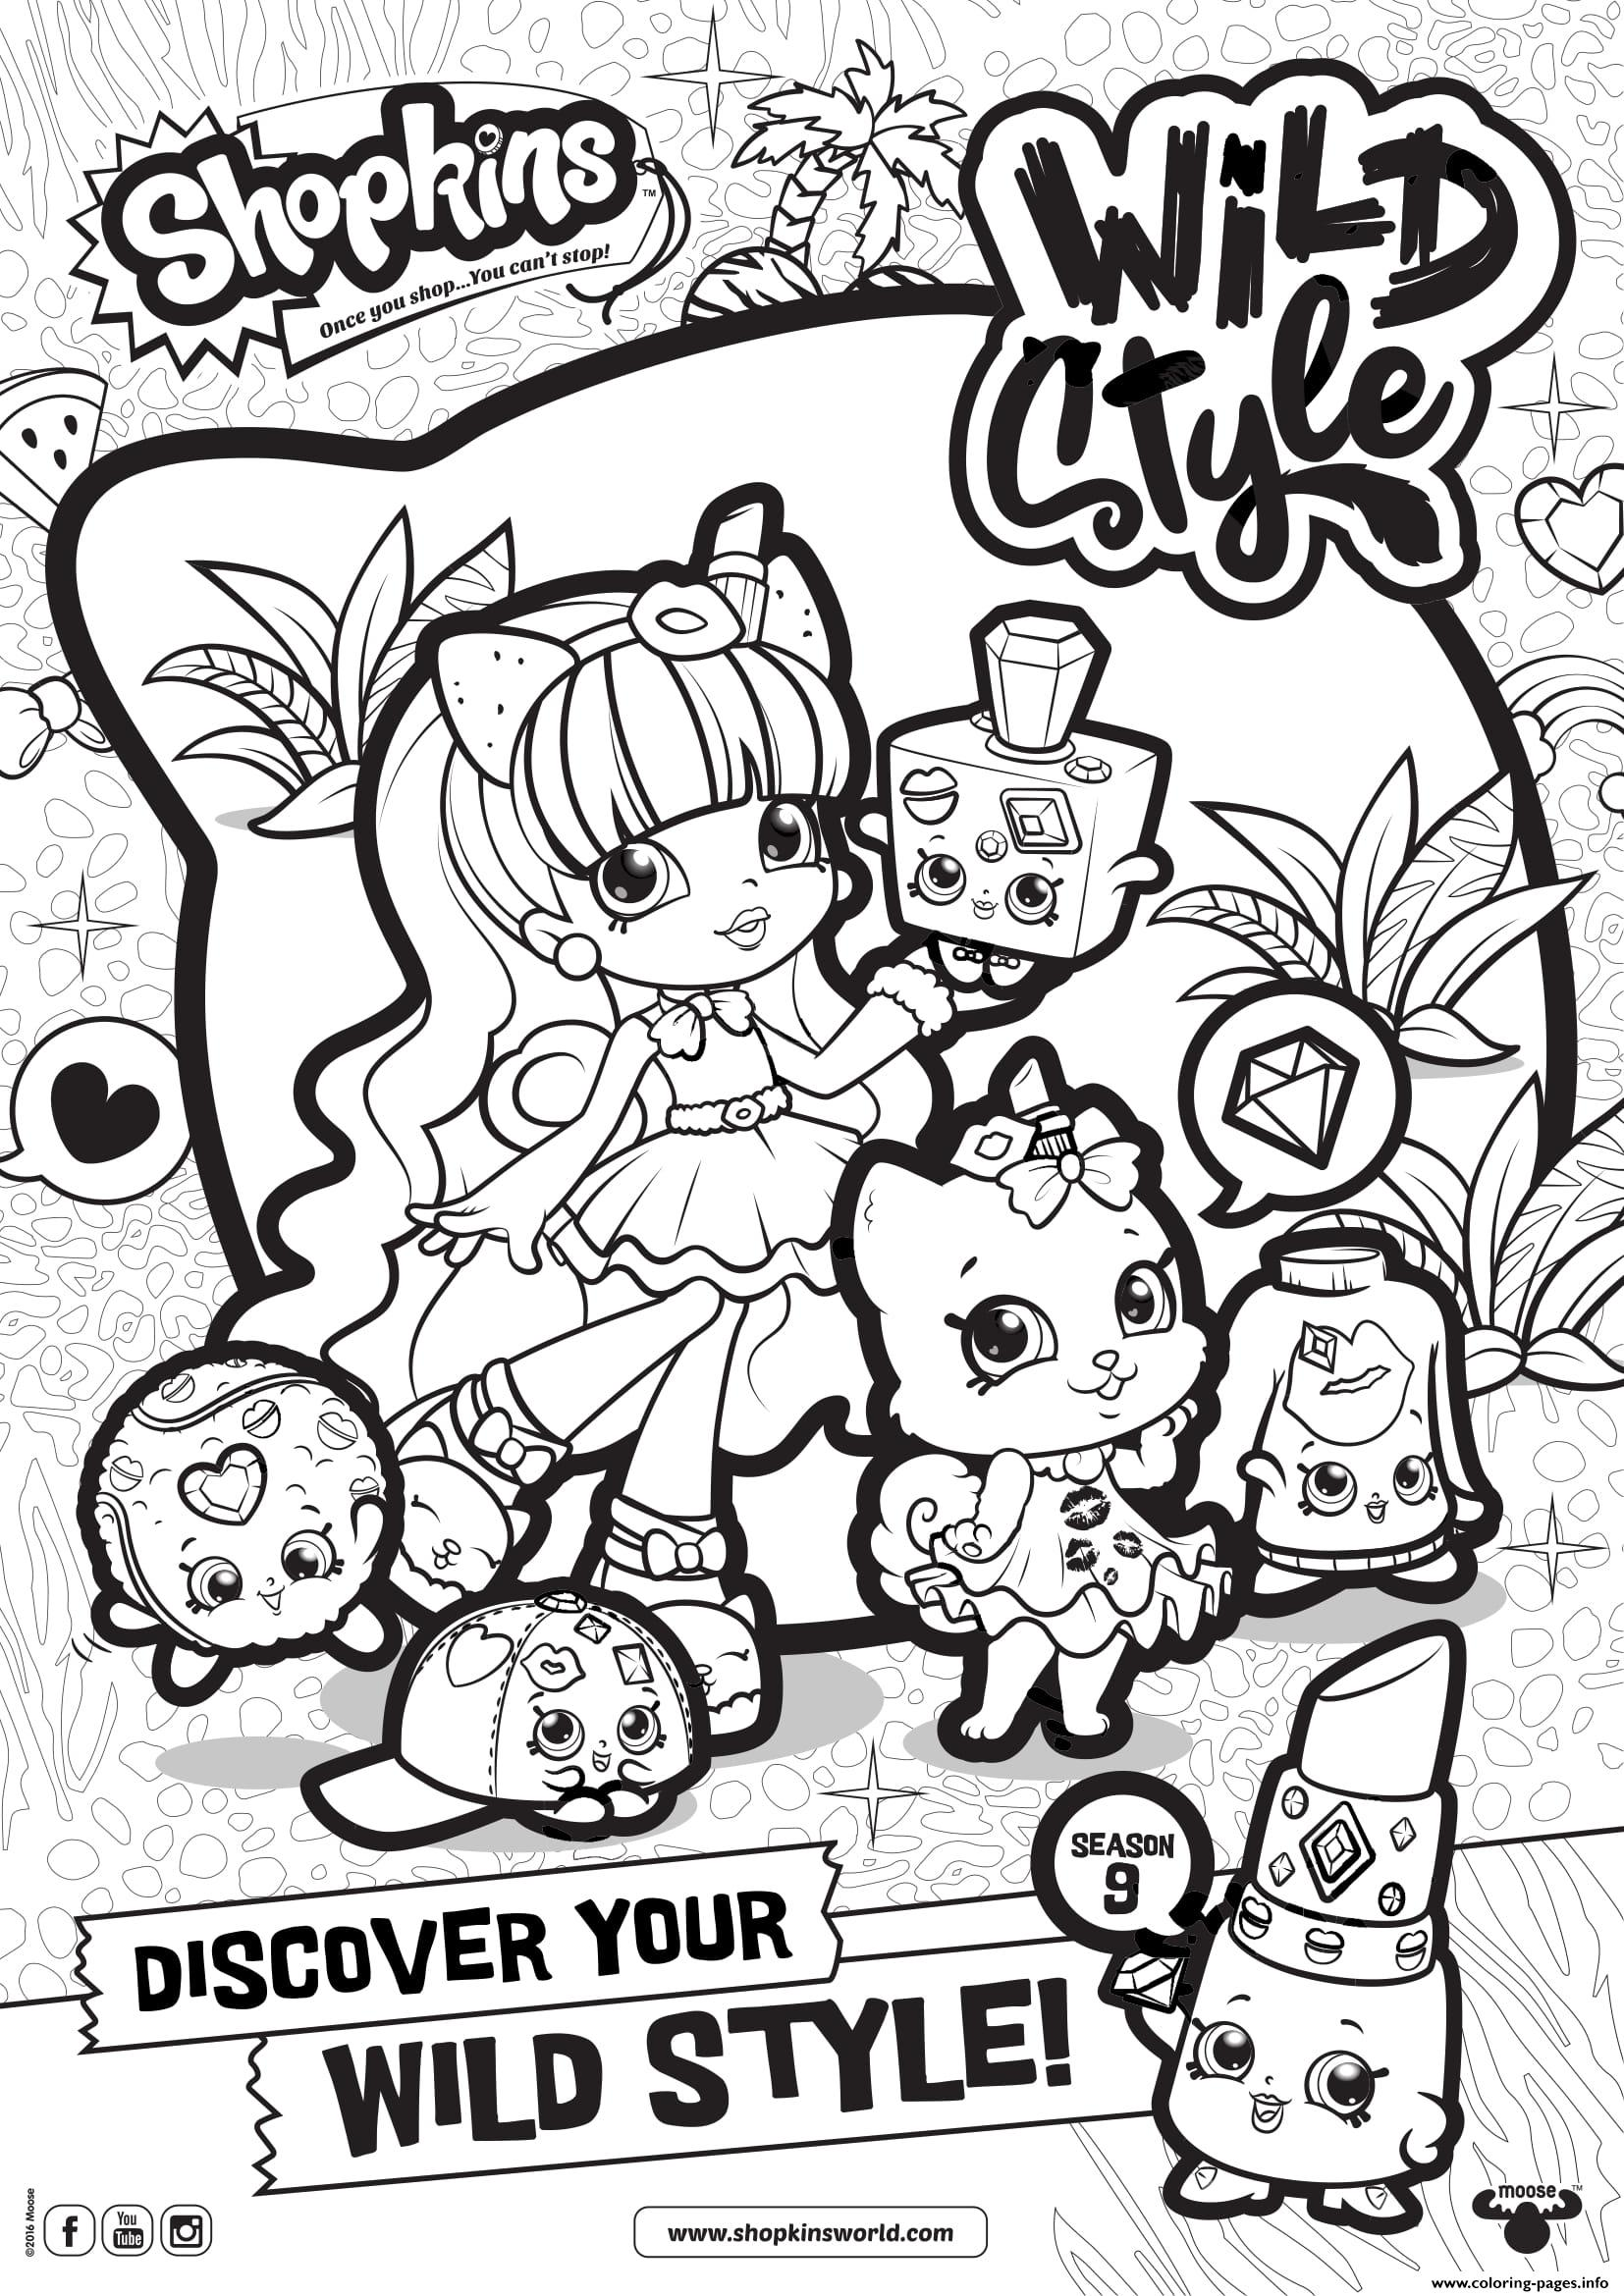 Shopkins Season 9 Wild Style 7 Coloring Pages